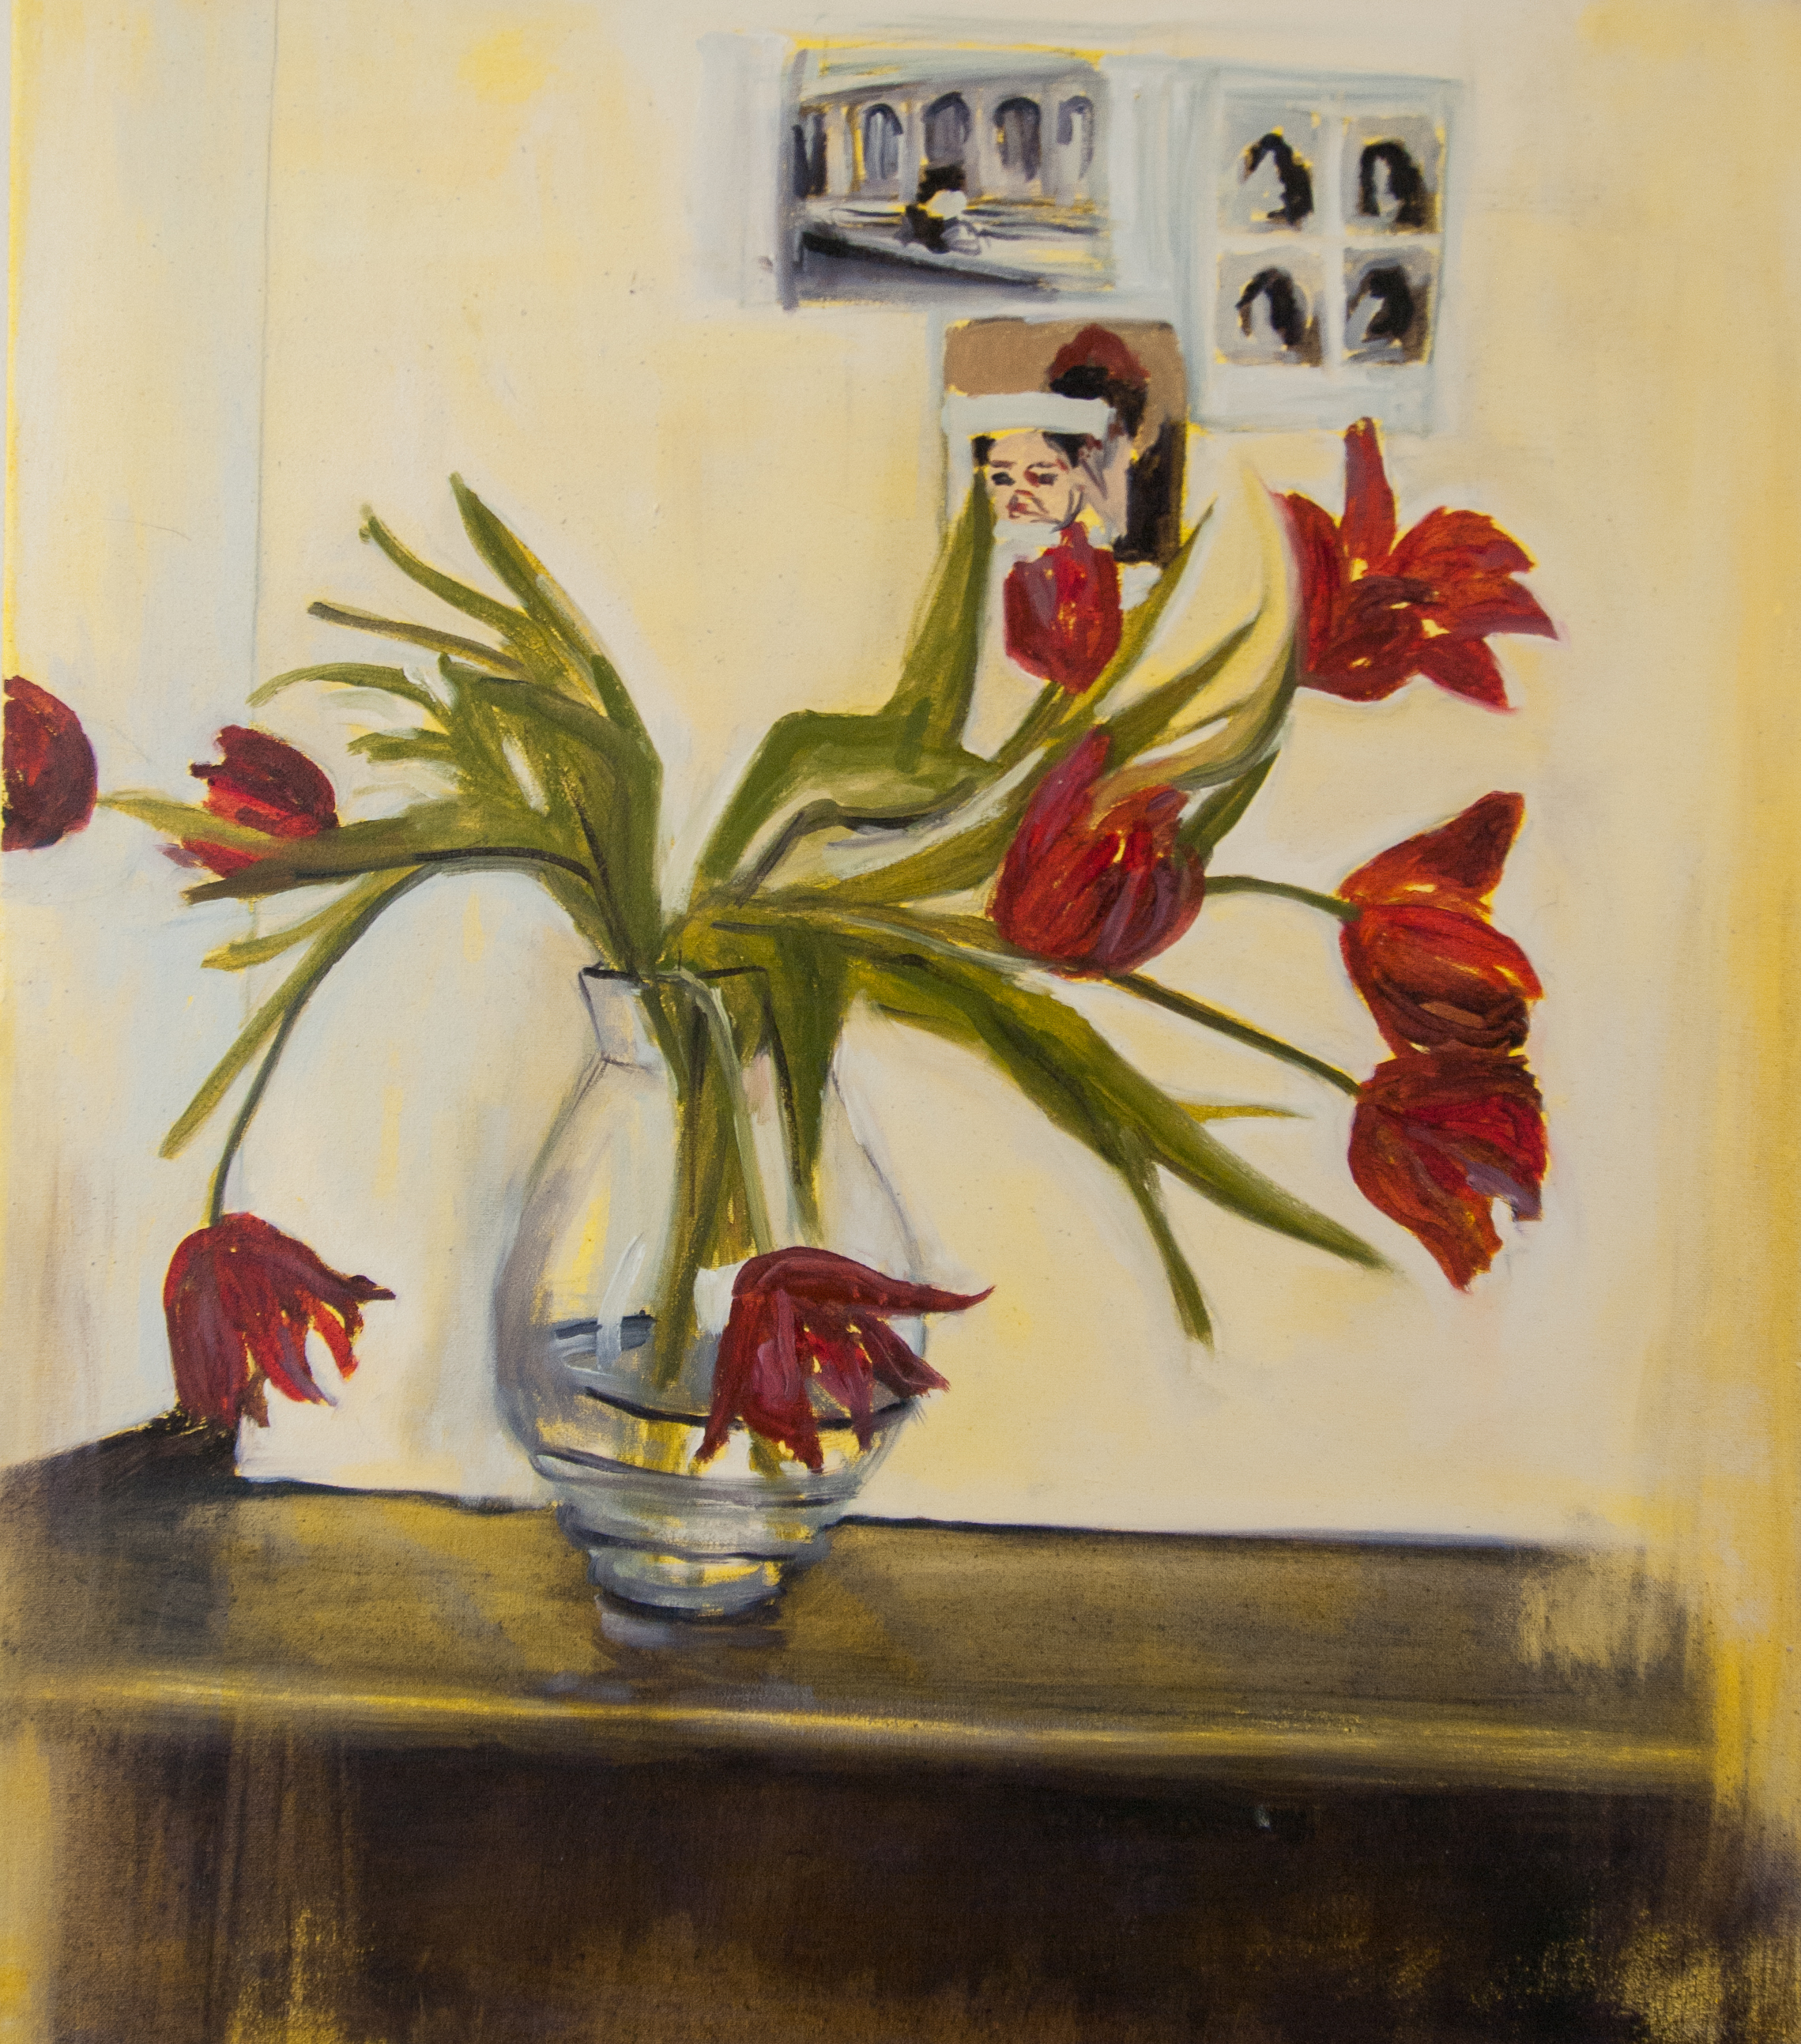 Still Life Day 60. 60x70cm. Oil, acrylic, and charcoal on canvas. 2015.